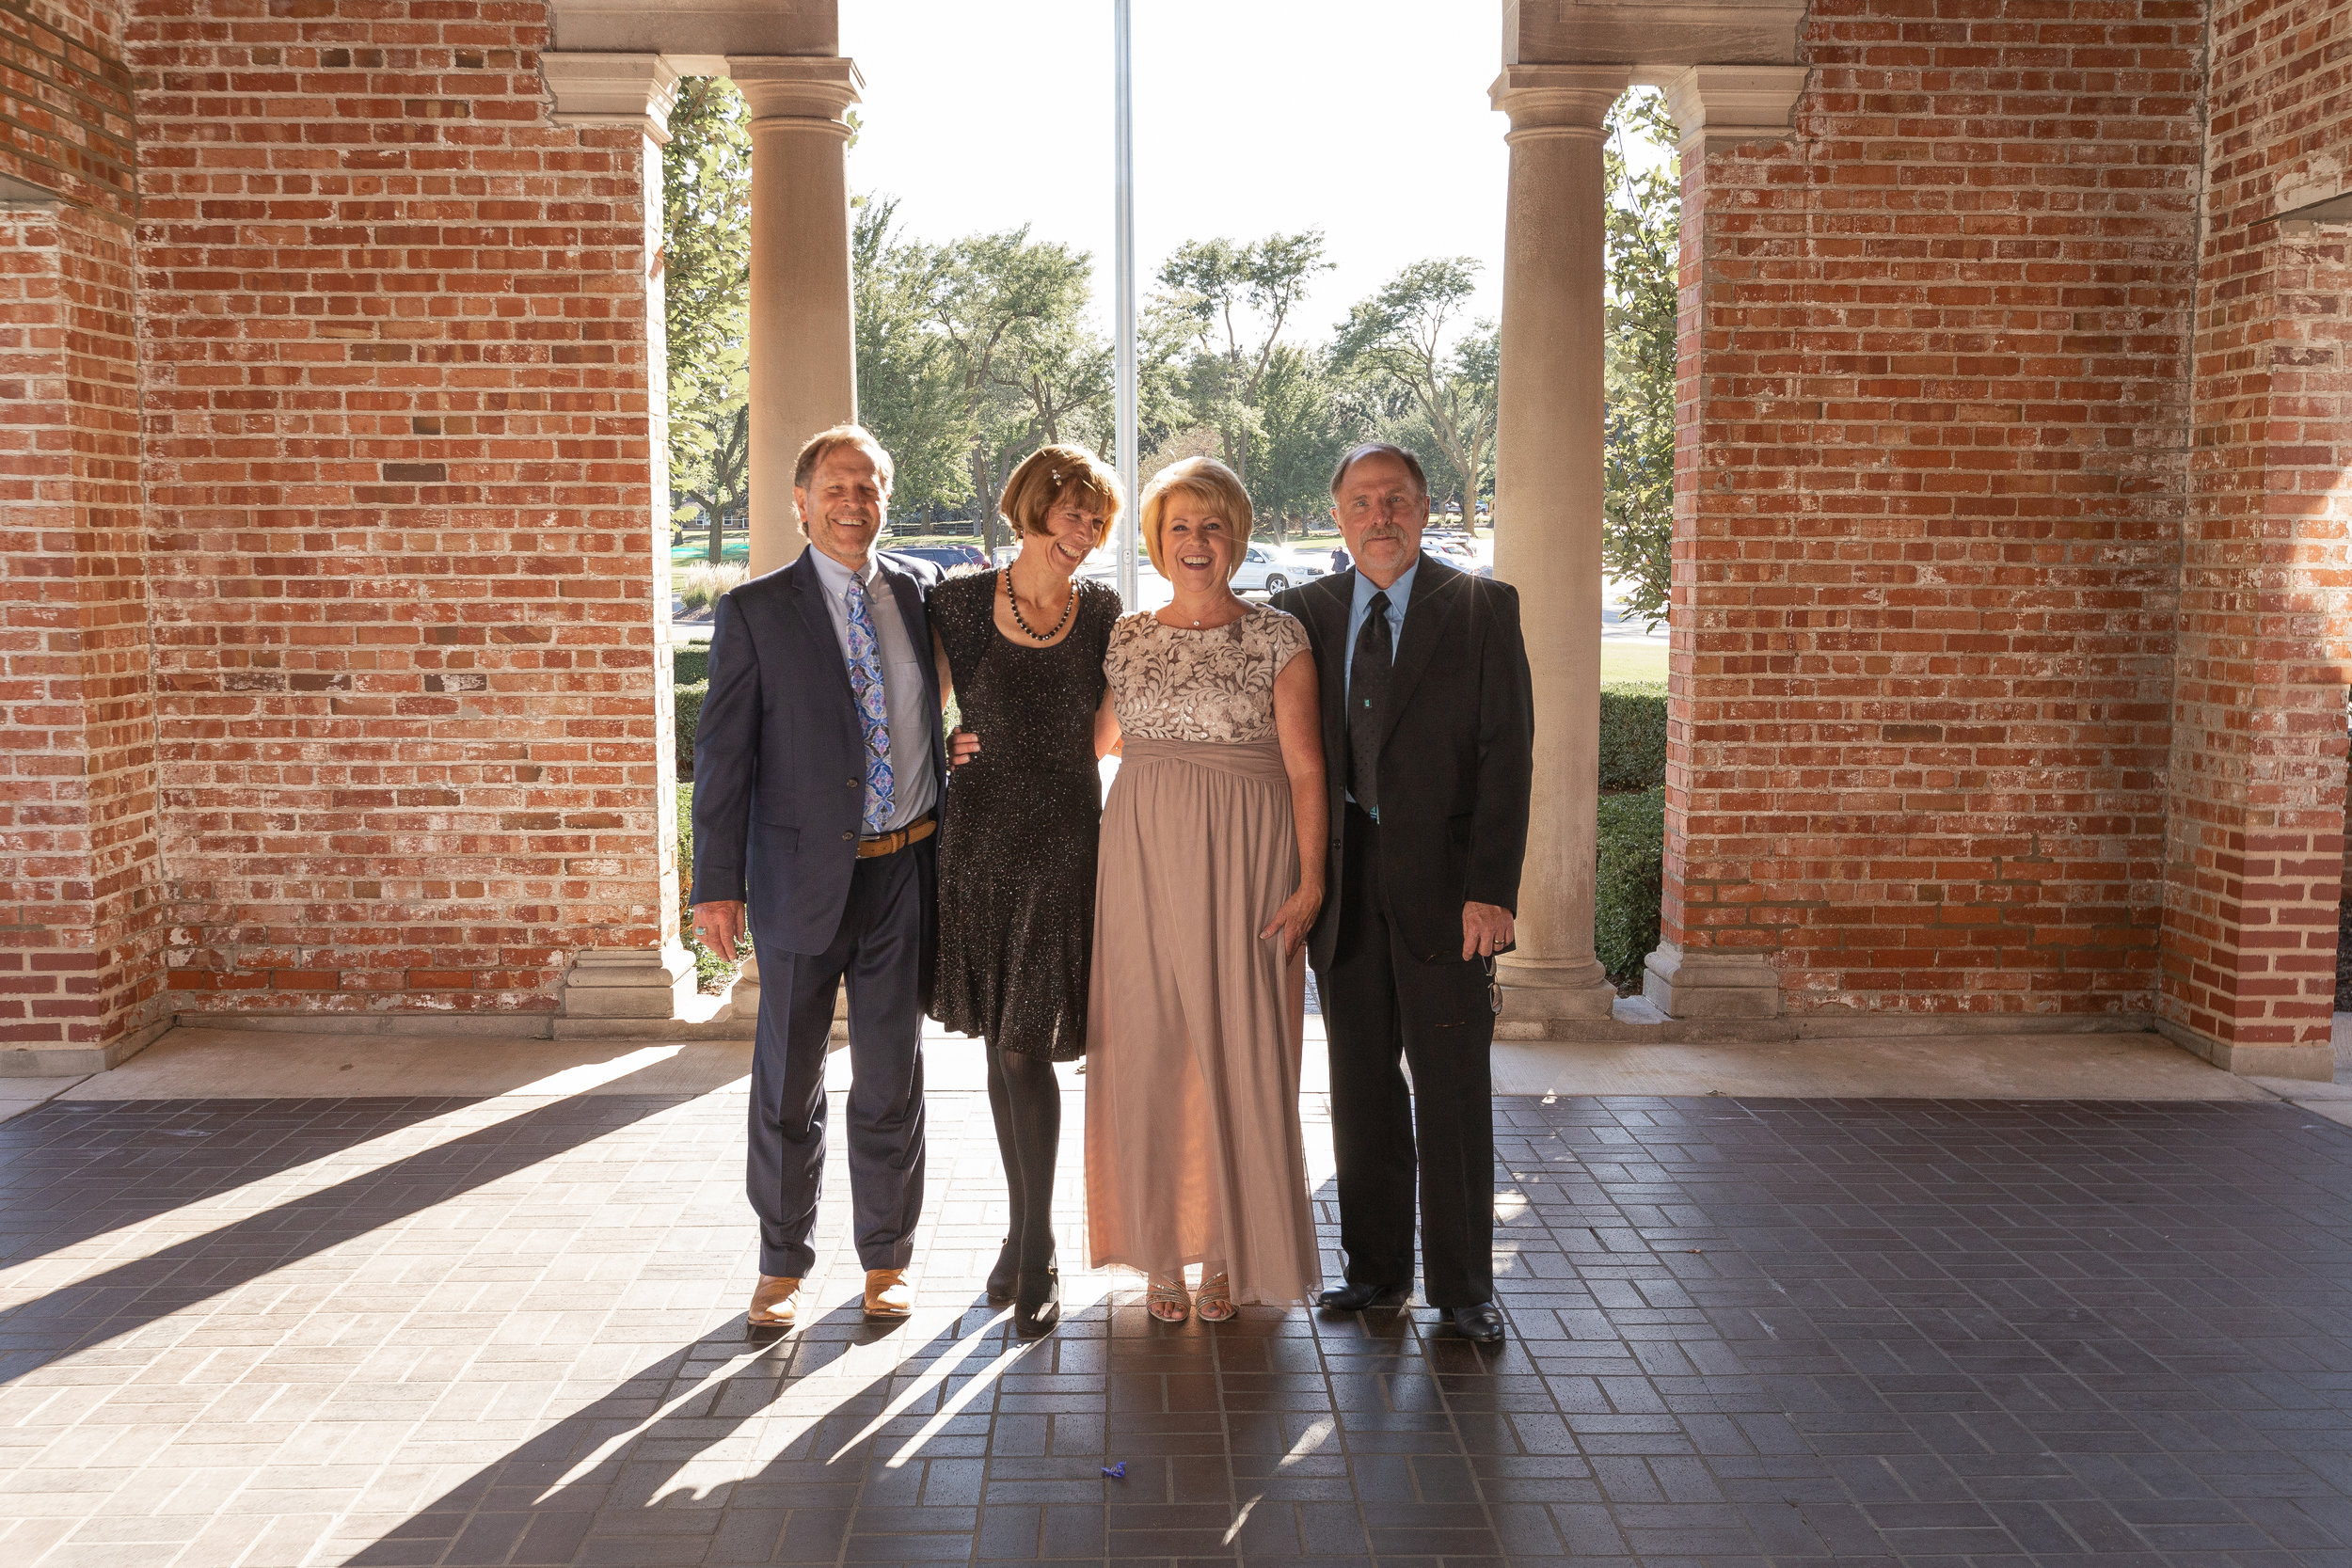 C_Wedding_Tronick, Megan & Andrew_09.22.18-602.JPG